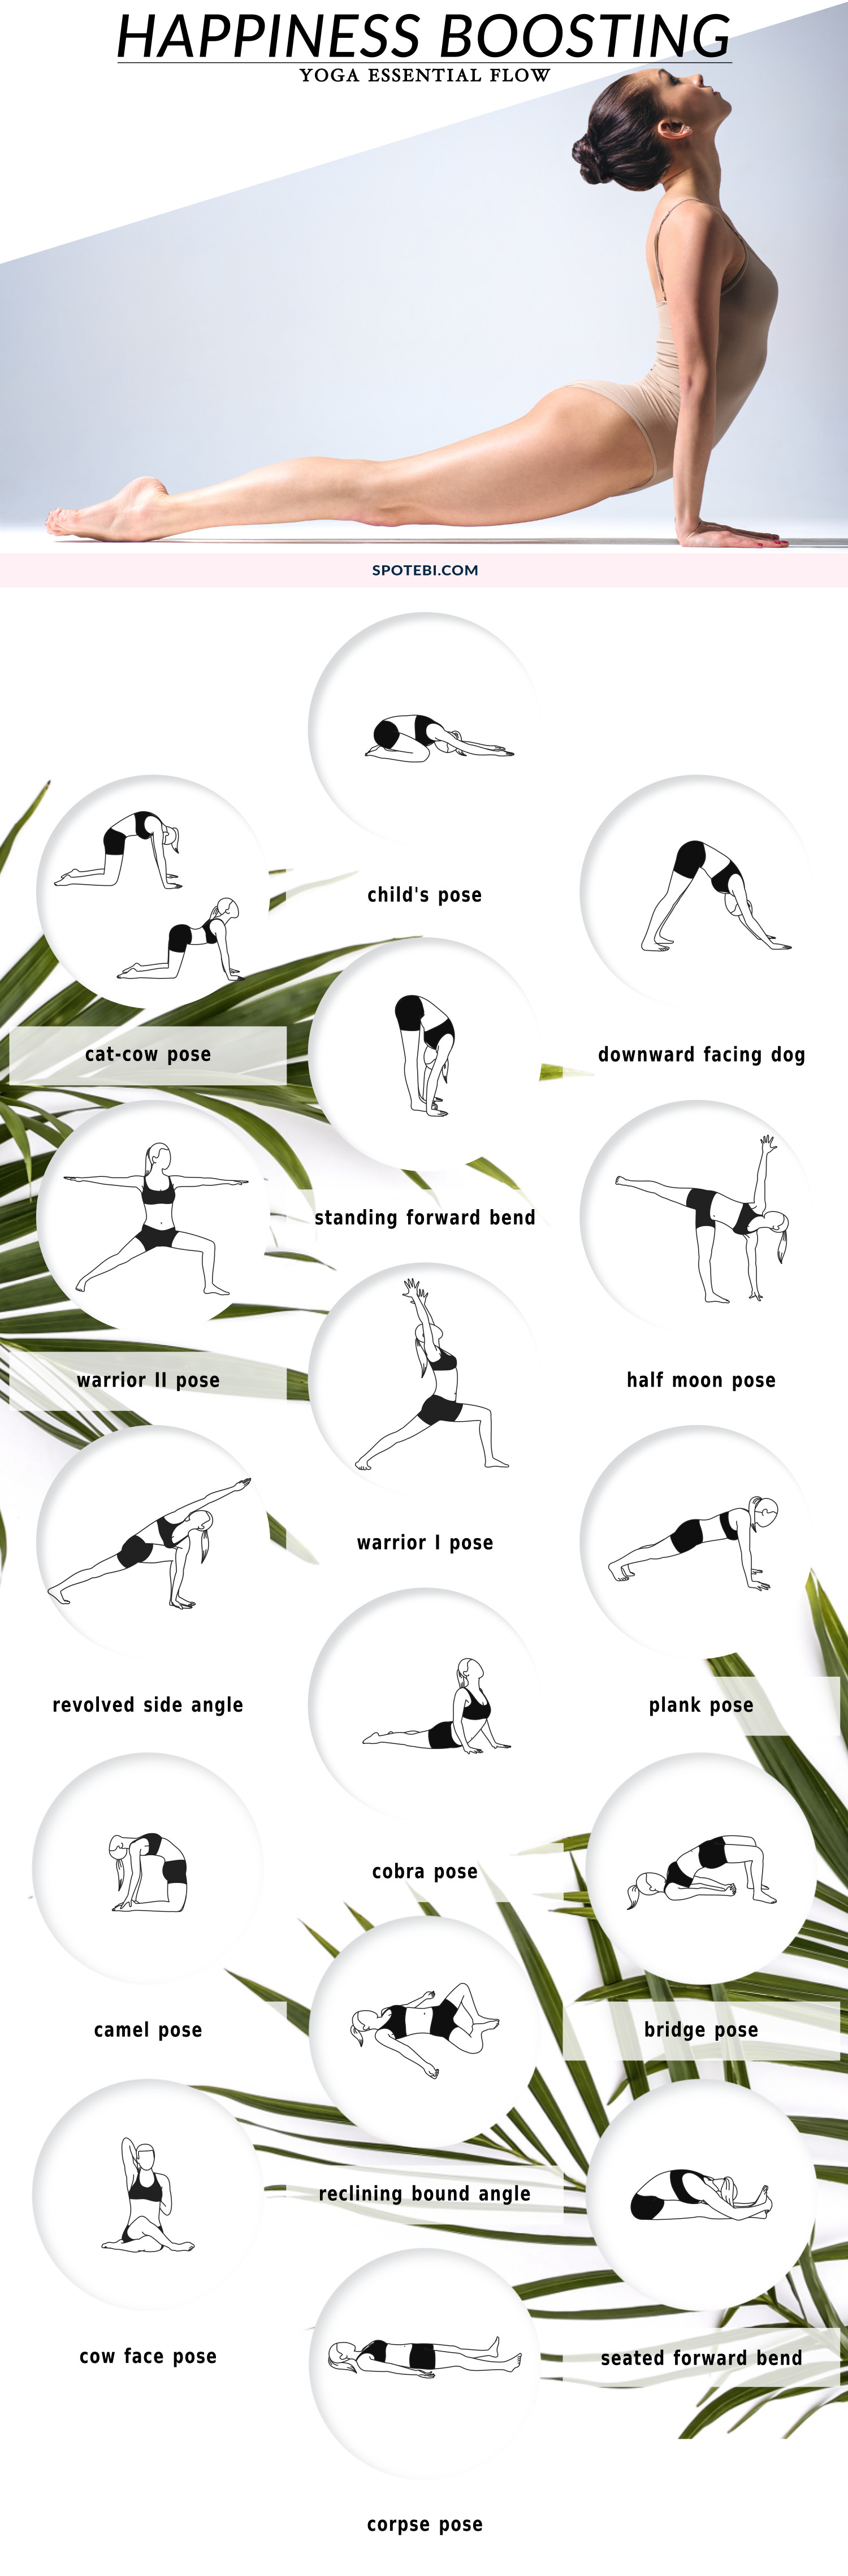 Do you need a quick boost of happiness? If so, hop on the mat and follow this 20-minute yoga essential flow. Forget your troubles, boost your energy and create a lighter, happier you! https://www.spotebi.com/yoga-sequences/happiness-boosting/